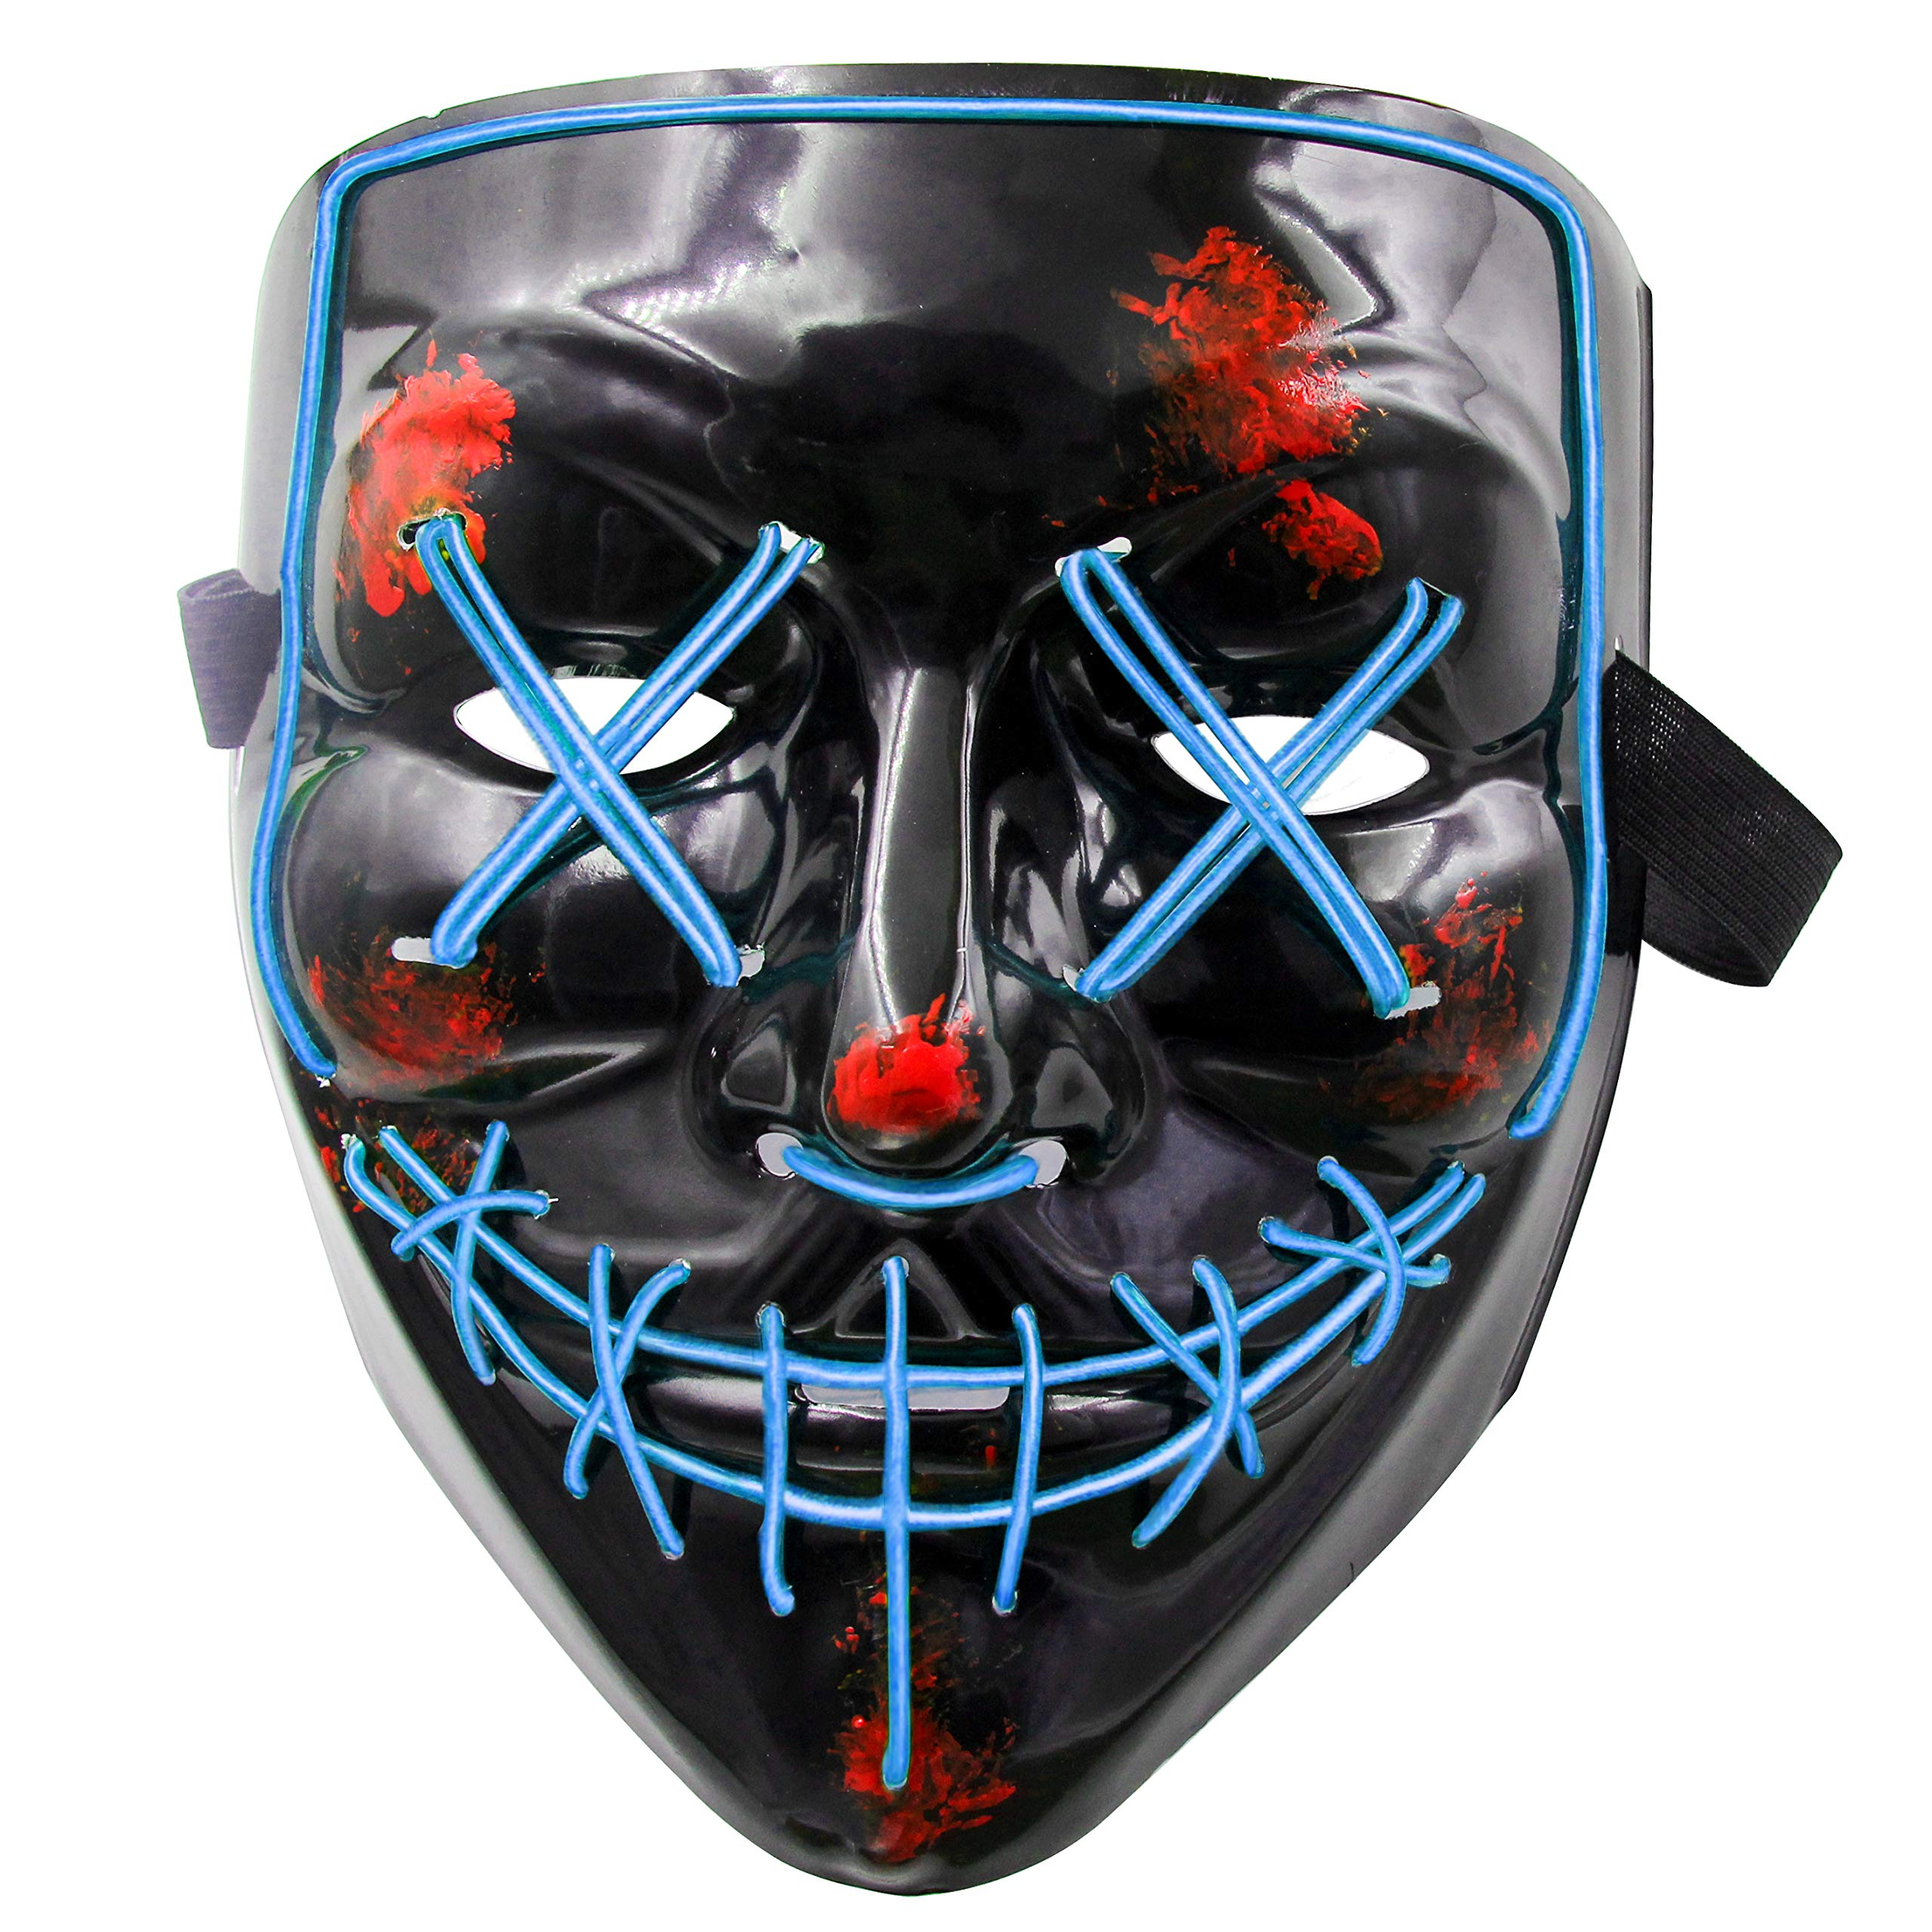 heytech LED Mask Halloween Scary Mask Cosplay LED Costume Mask Light up for Halloween Festival Party(Blue) by heytech